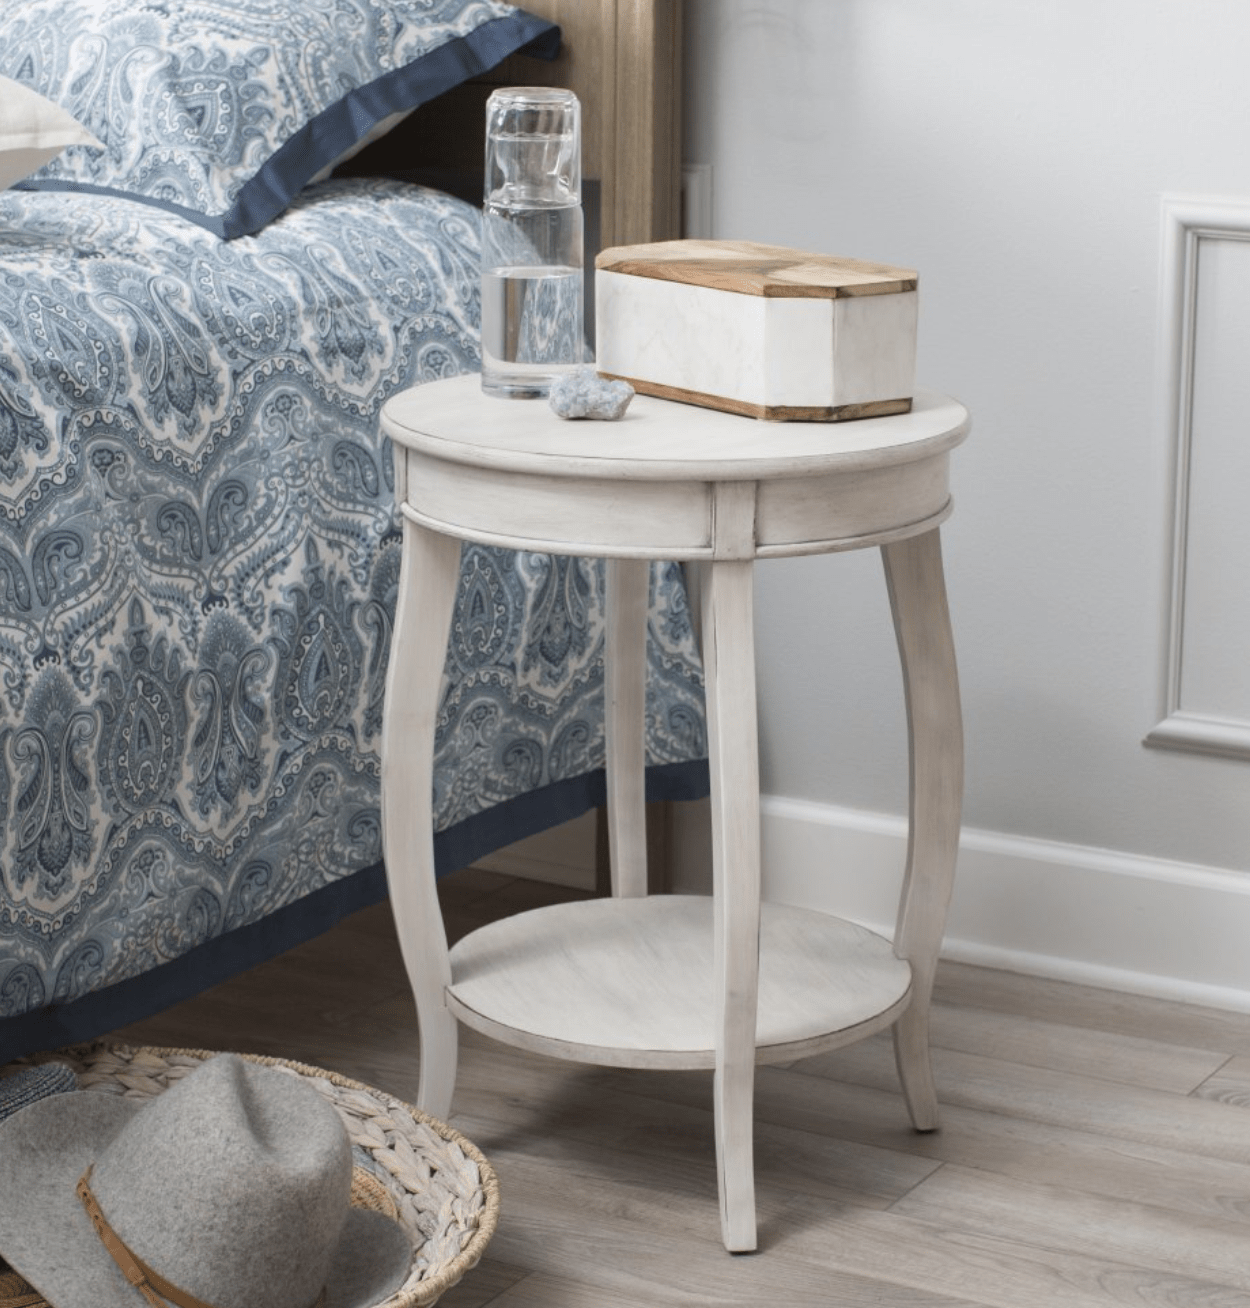 tag archived white accent tables living room astonishing small corner off metal round top eryn whitewashed pedestal end table whitewash outdoor marble antique furniture distressed